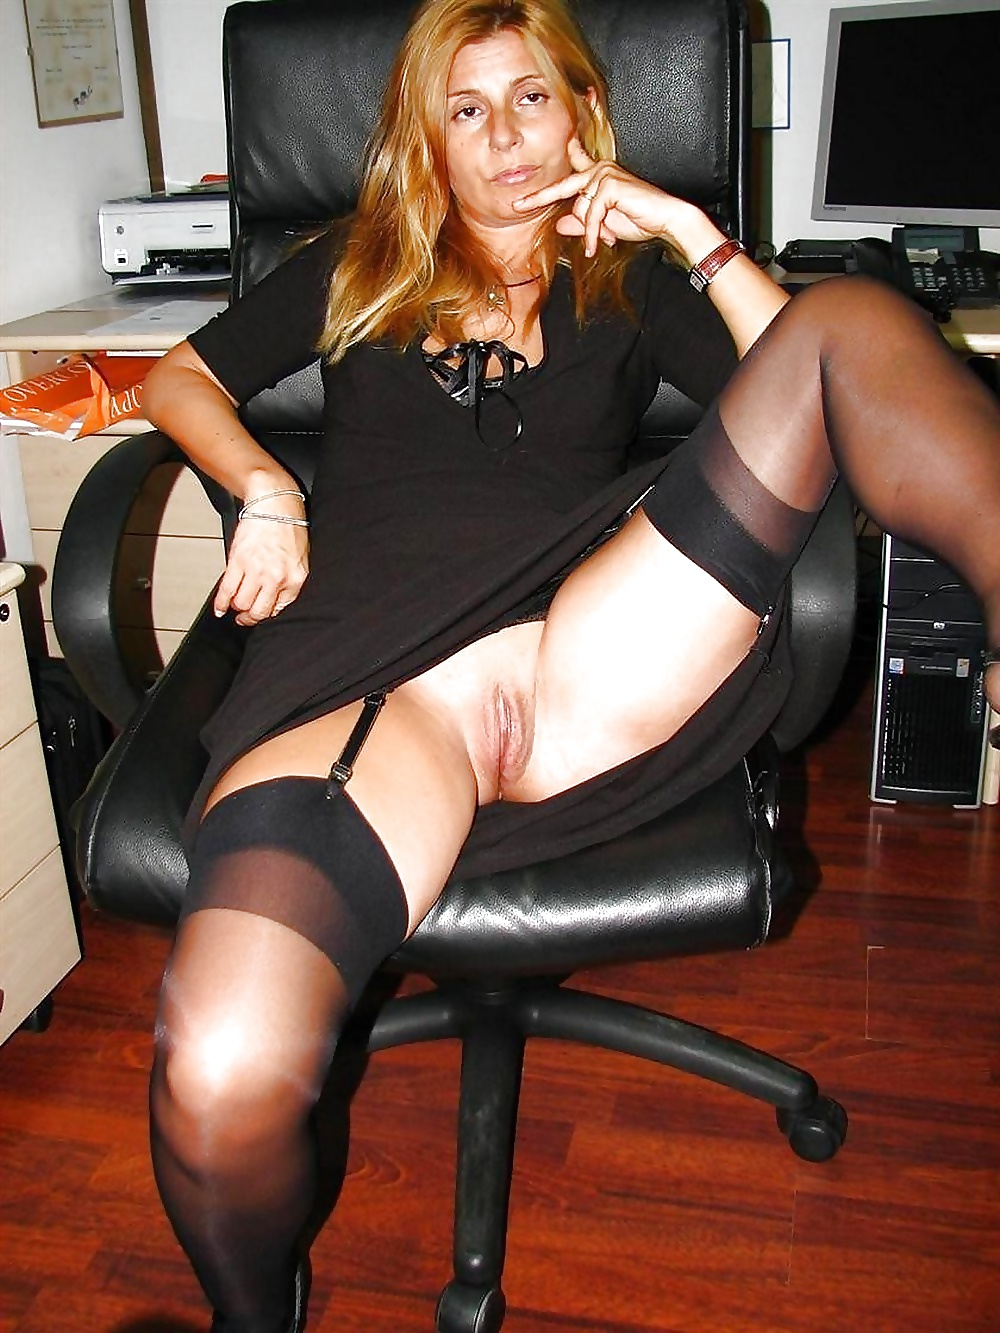 Candid blonde milf upskirt, uploaded by urisant